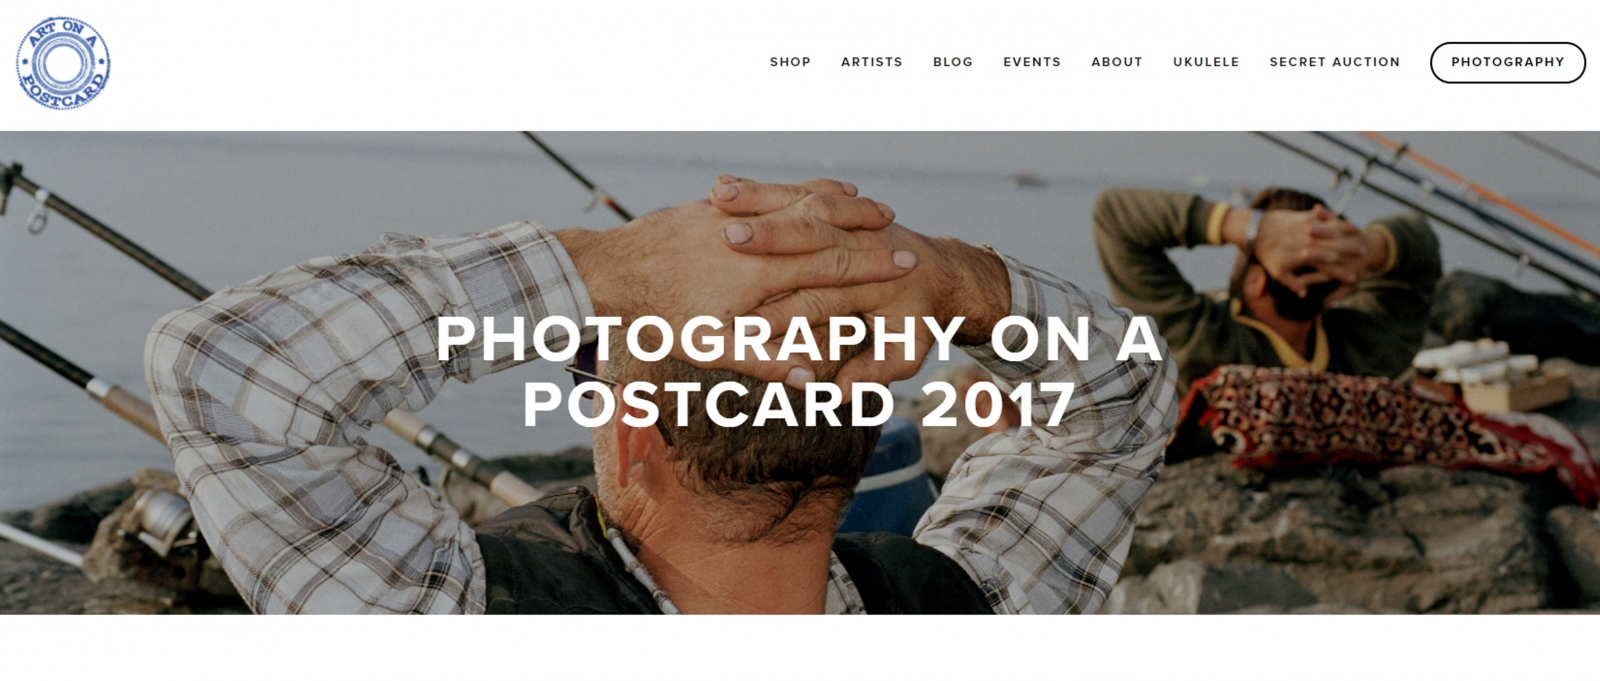 Art and Documentary Photography - Loading artonpostcard.jpg